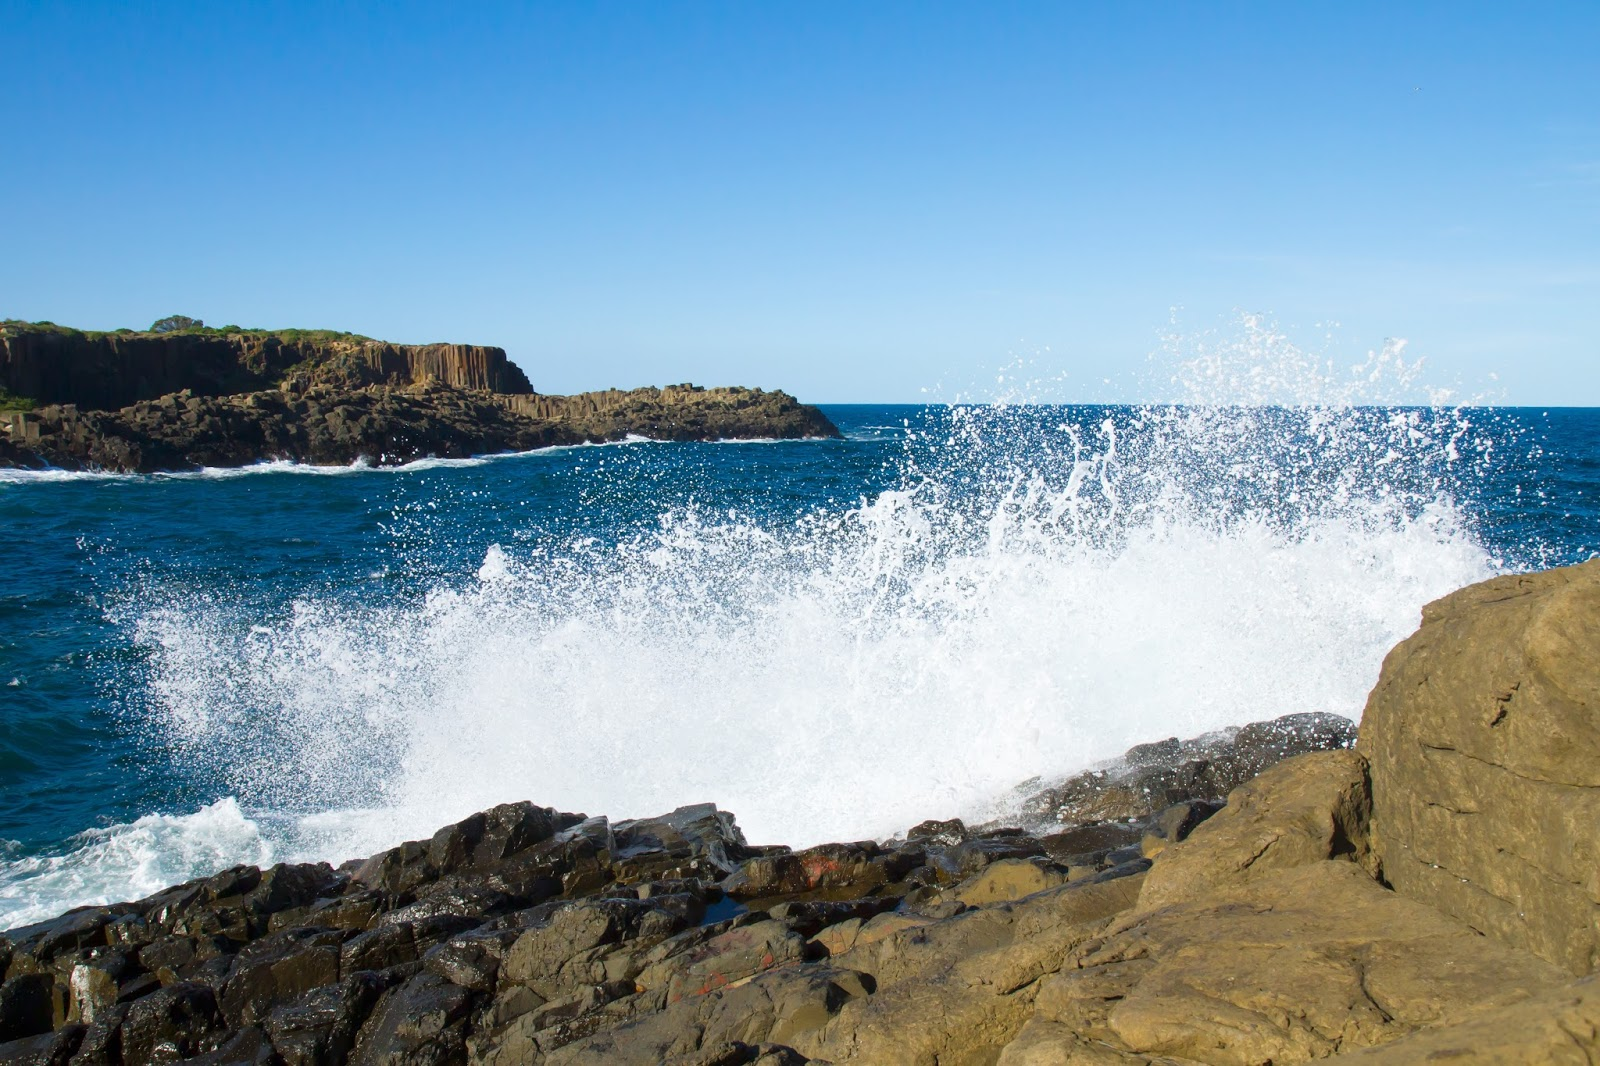 waves crashing at the bombo rock quarry in australia